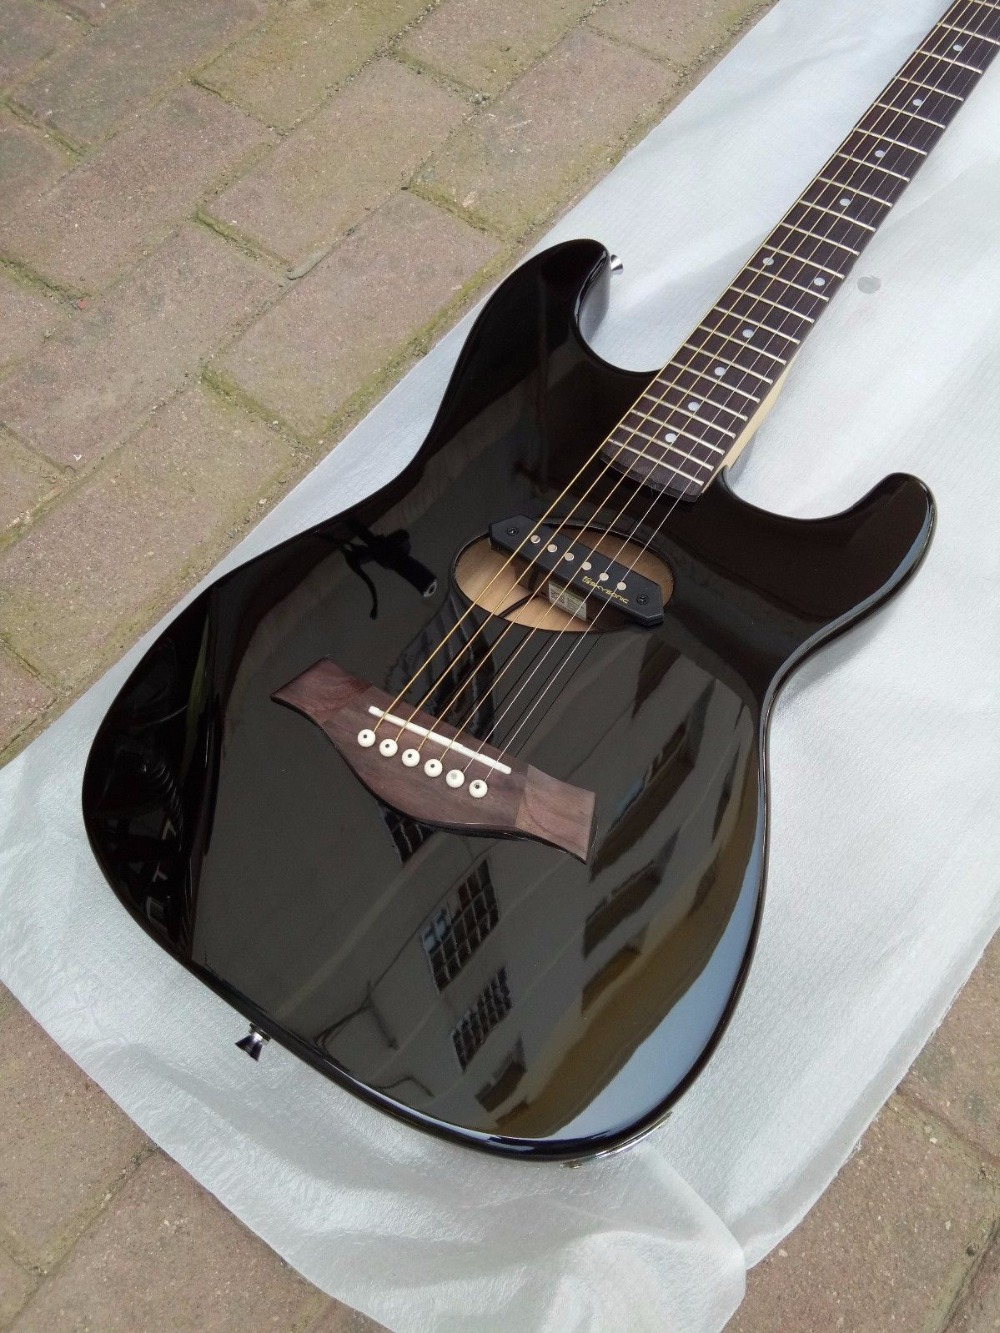 Put Pickups On Acoustic Guitar : hollow electric guitar st body black color install pickup with acoustic string in guitar from ~ Hamham.info Haus und Dekorationen